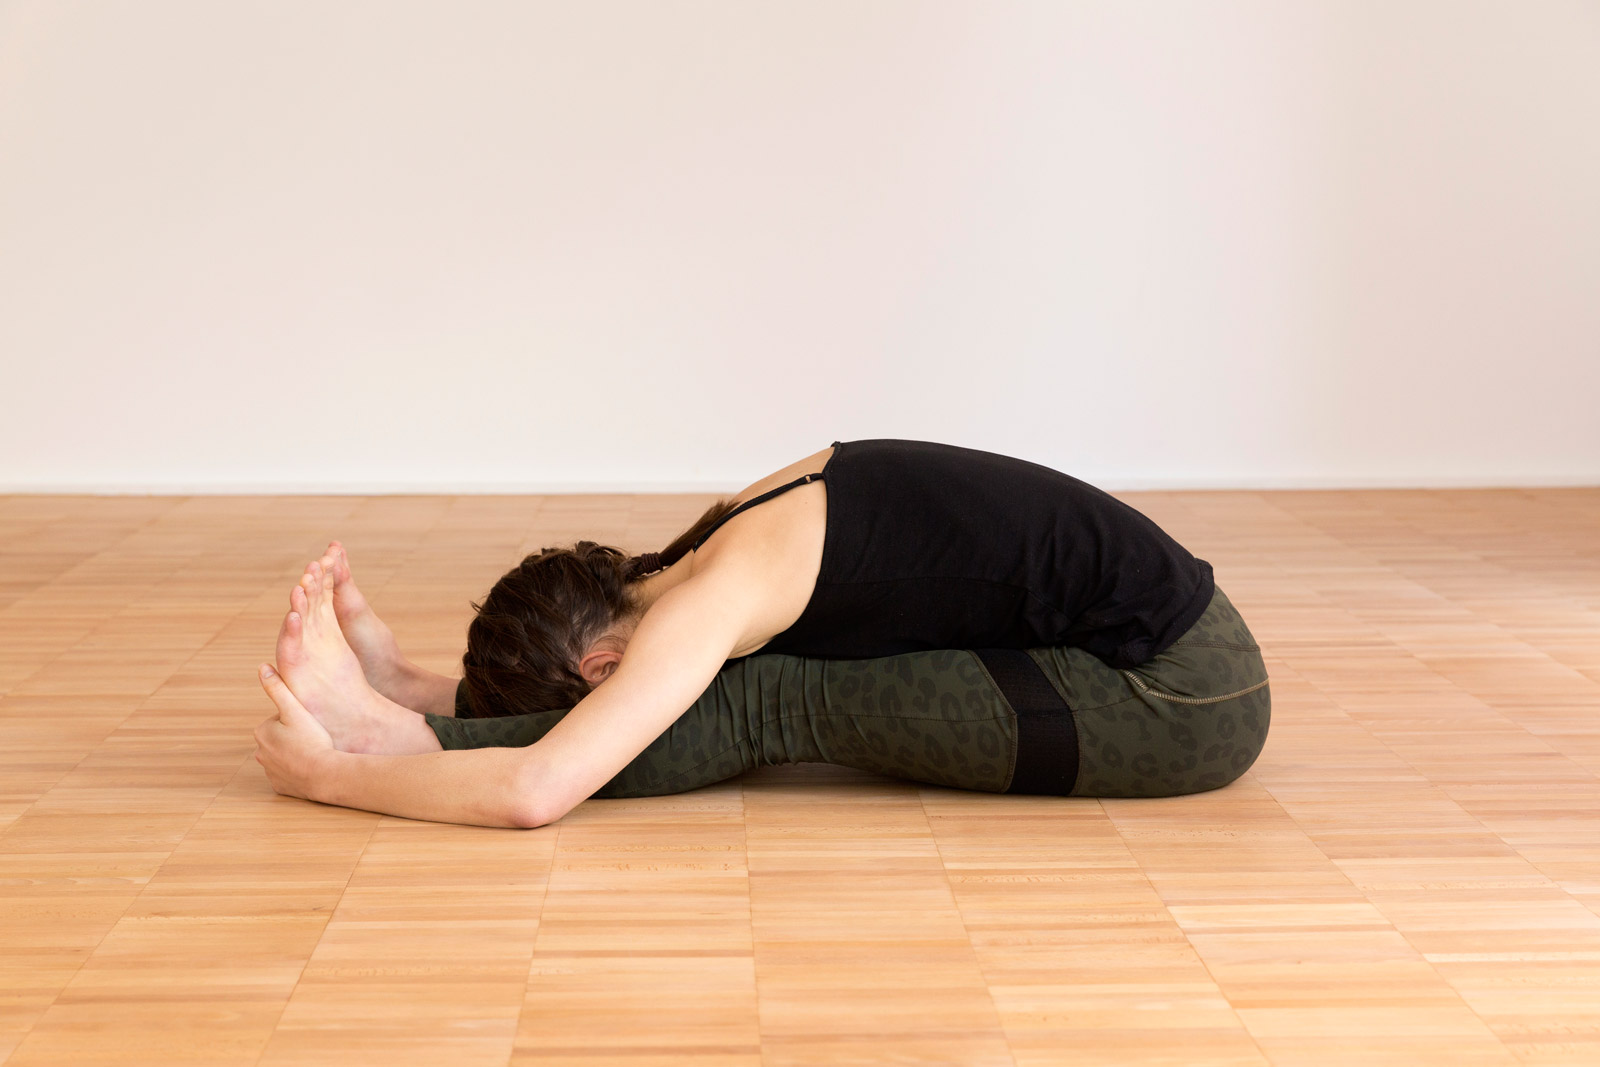 everybodyoga Yoga Yin Yoga content